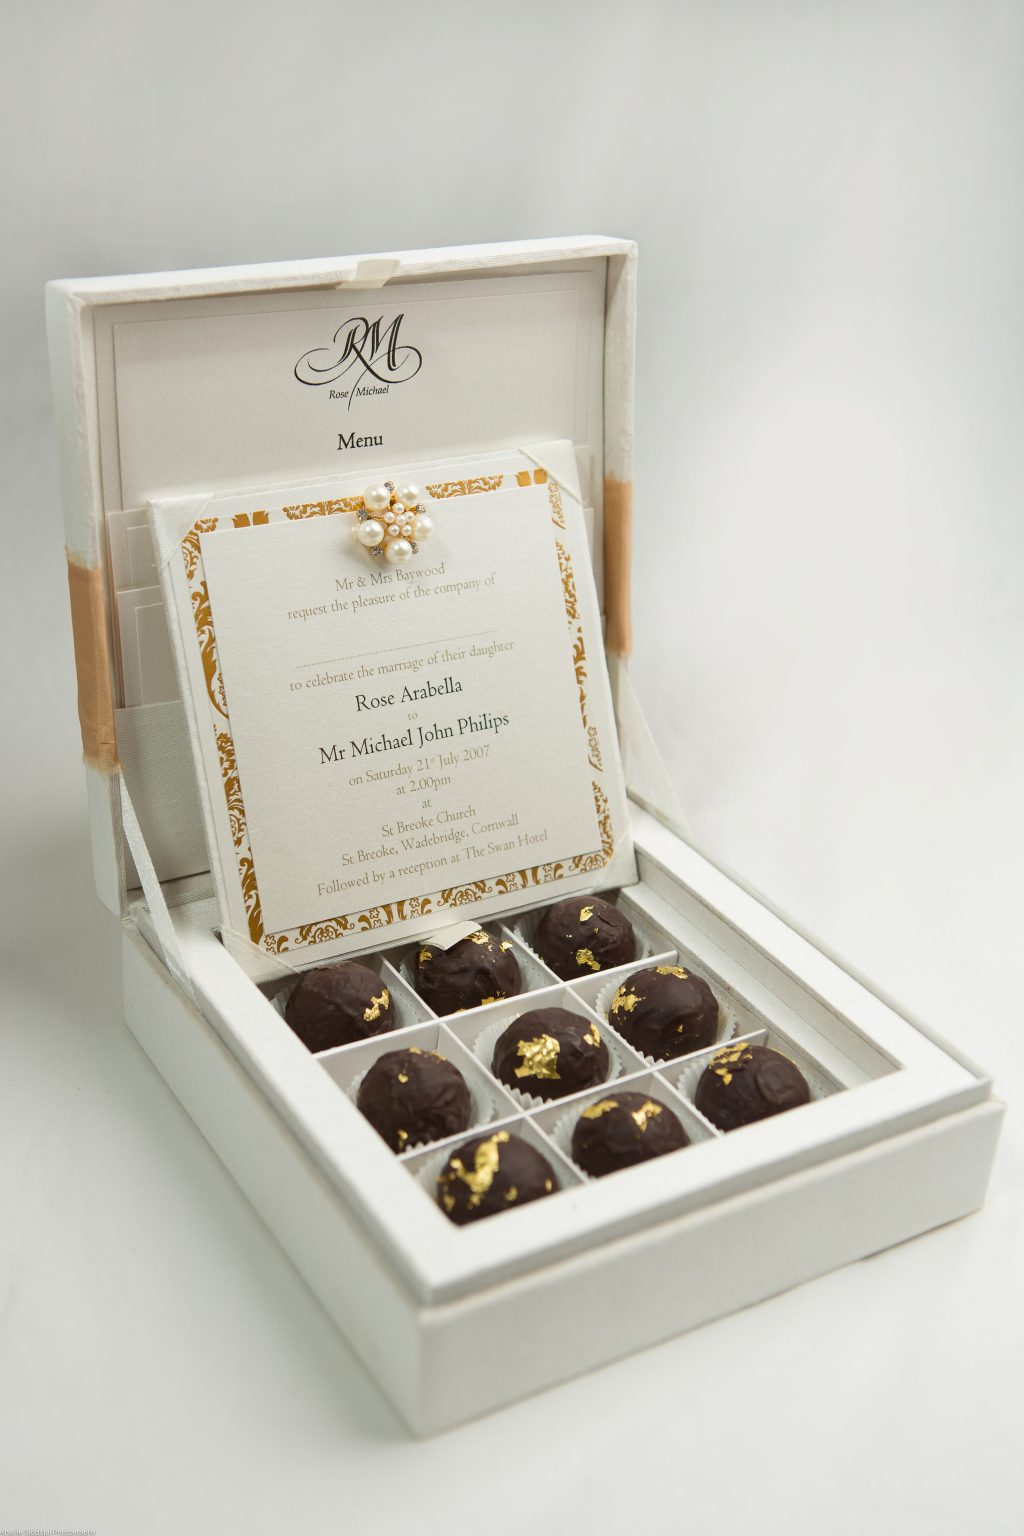 Chocolate Box Invite Archives - ER Stationery - Luxury Silk Wedding Invitations and Stationery